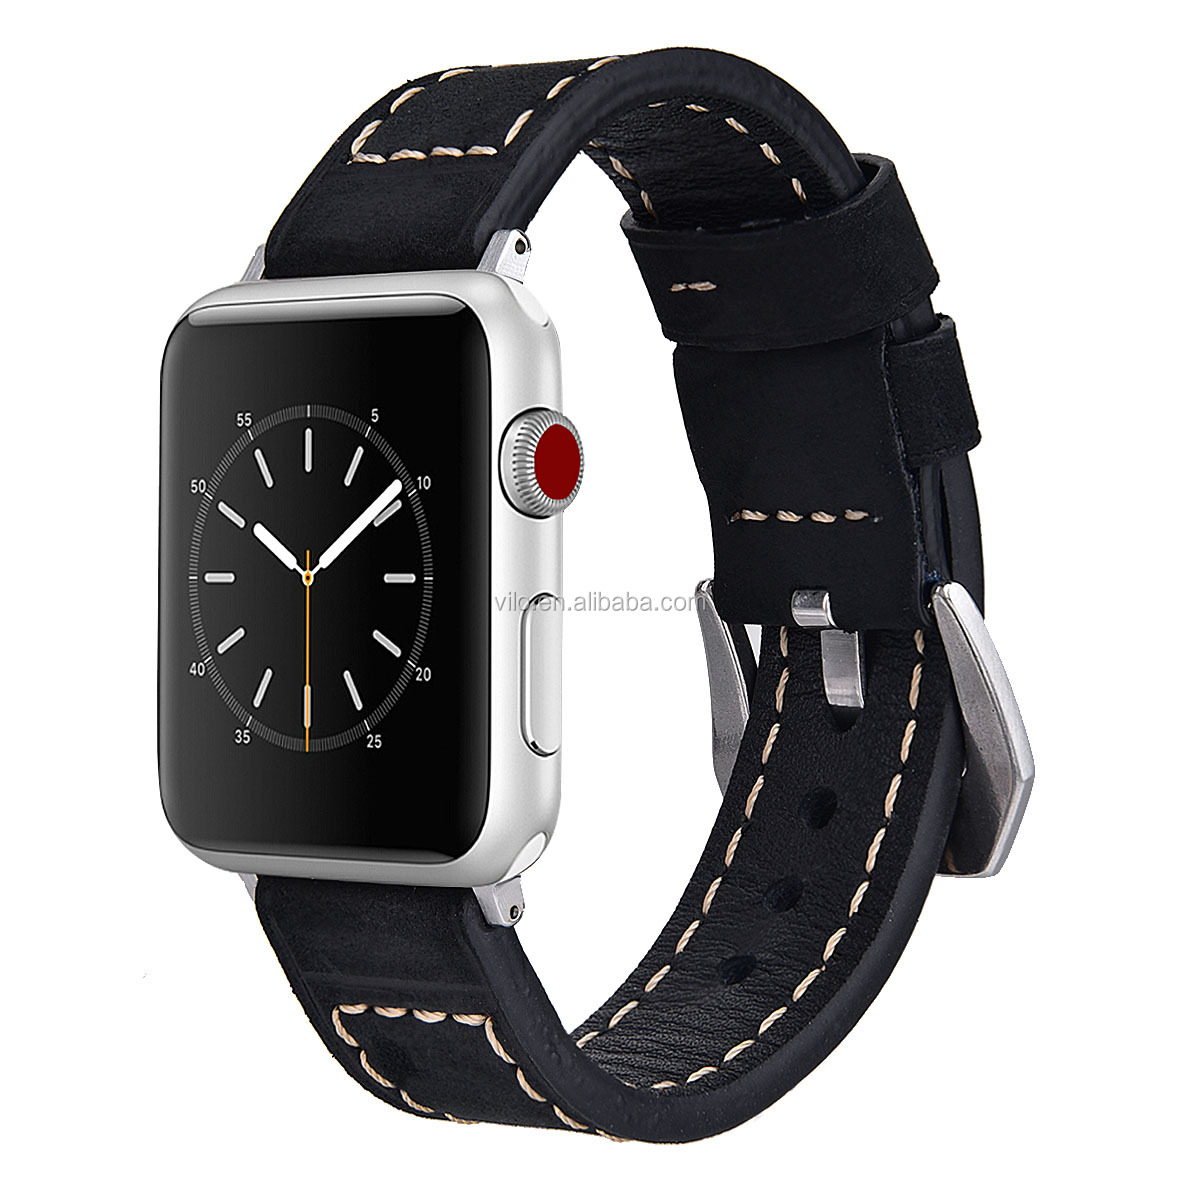 High quality Leather strap watch band for apple watch series 1/2/3/4/5 genuine leather watch band 38mm 40mm 42mm 44mm